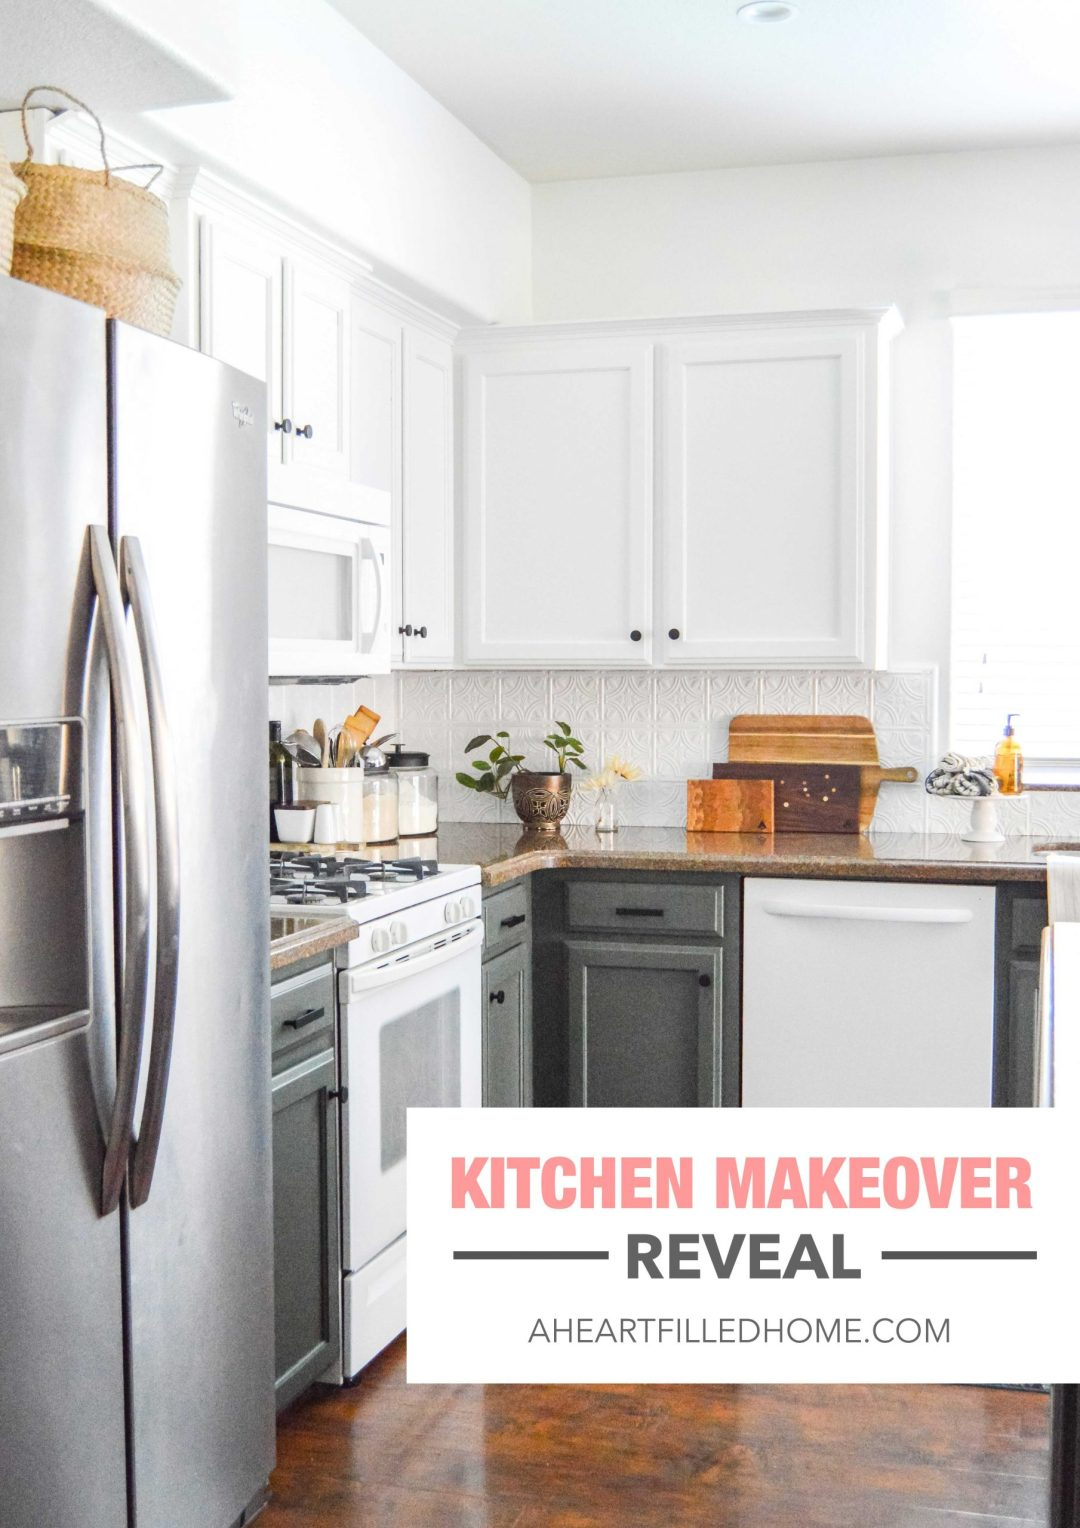 Kitchen Makeover Reveal from A Heart Filled Home